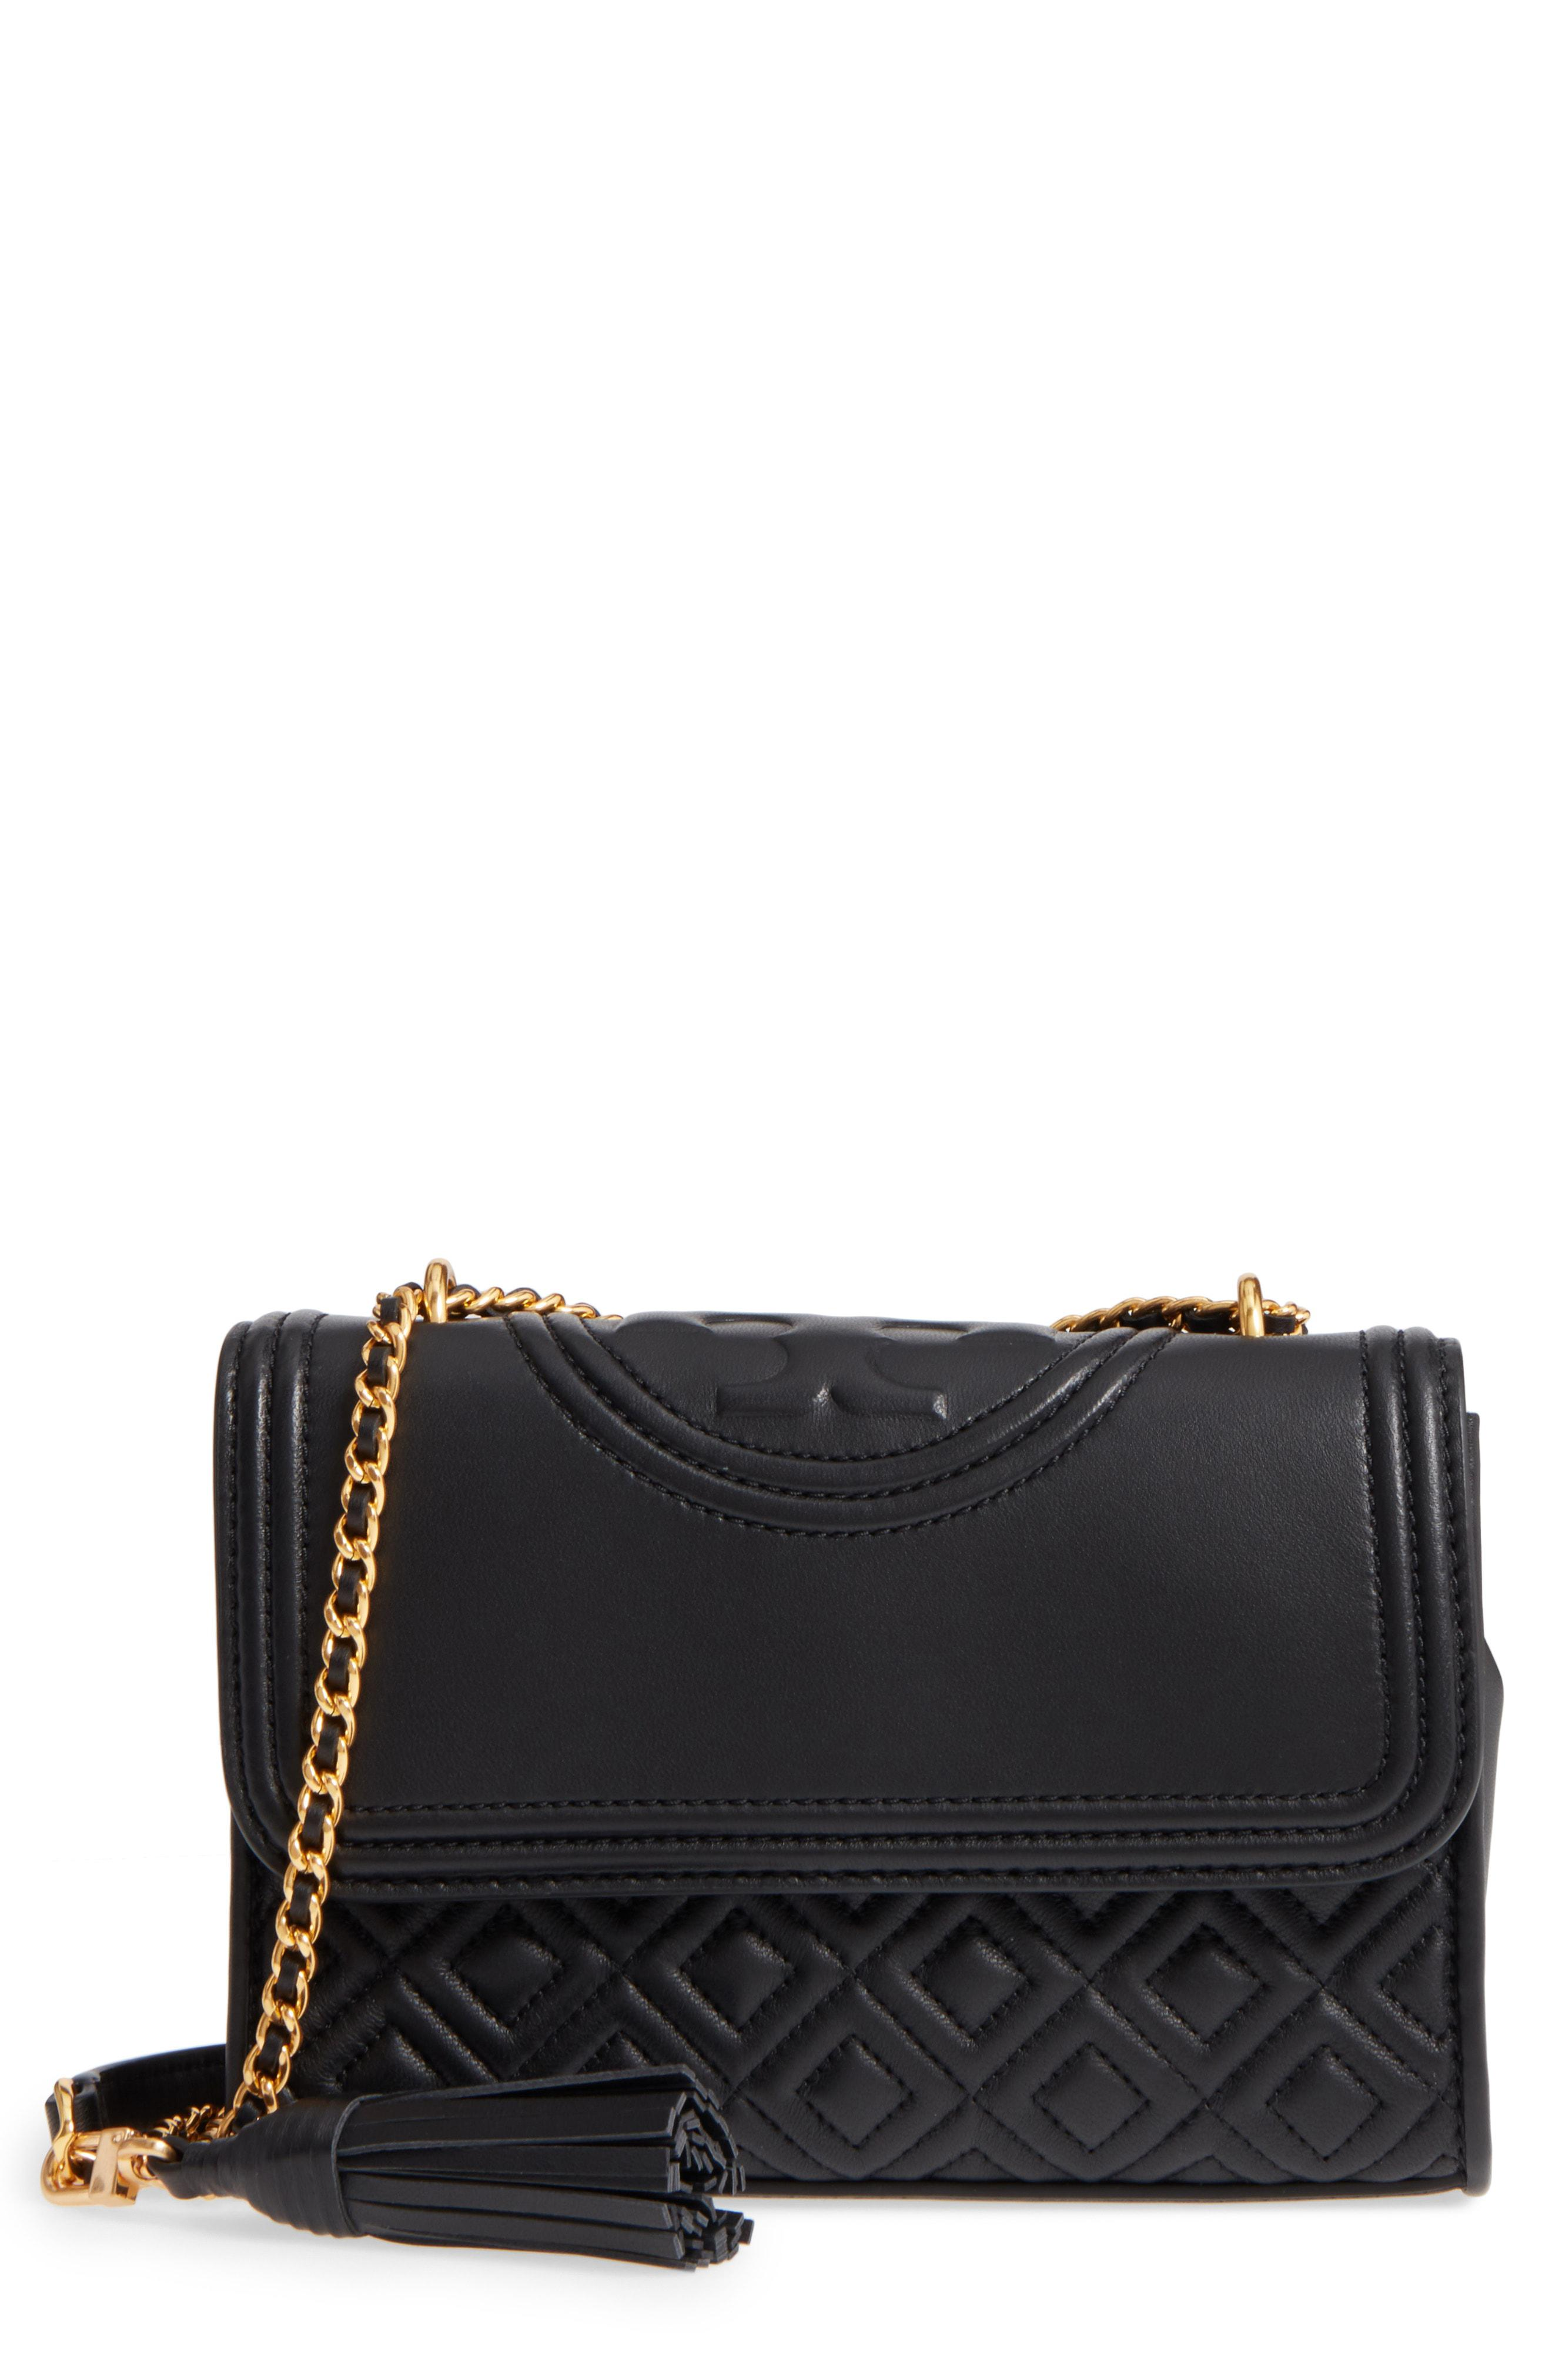 1c6fd75f5c7d Tory Burch. Women s Black Small Fleming Leather Convertible Shoulder Bag -